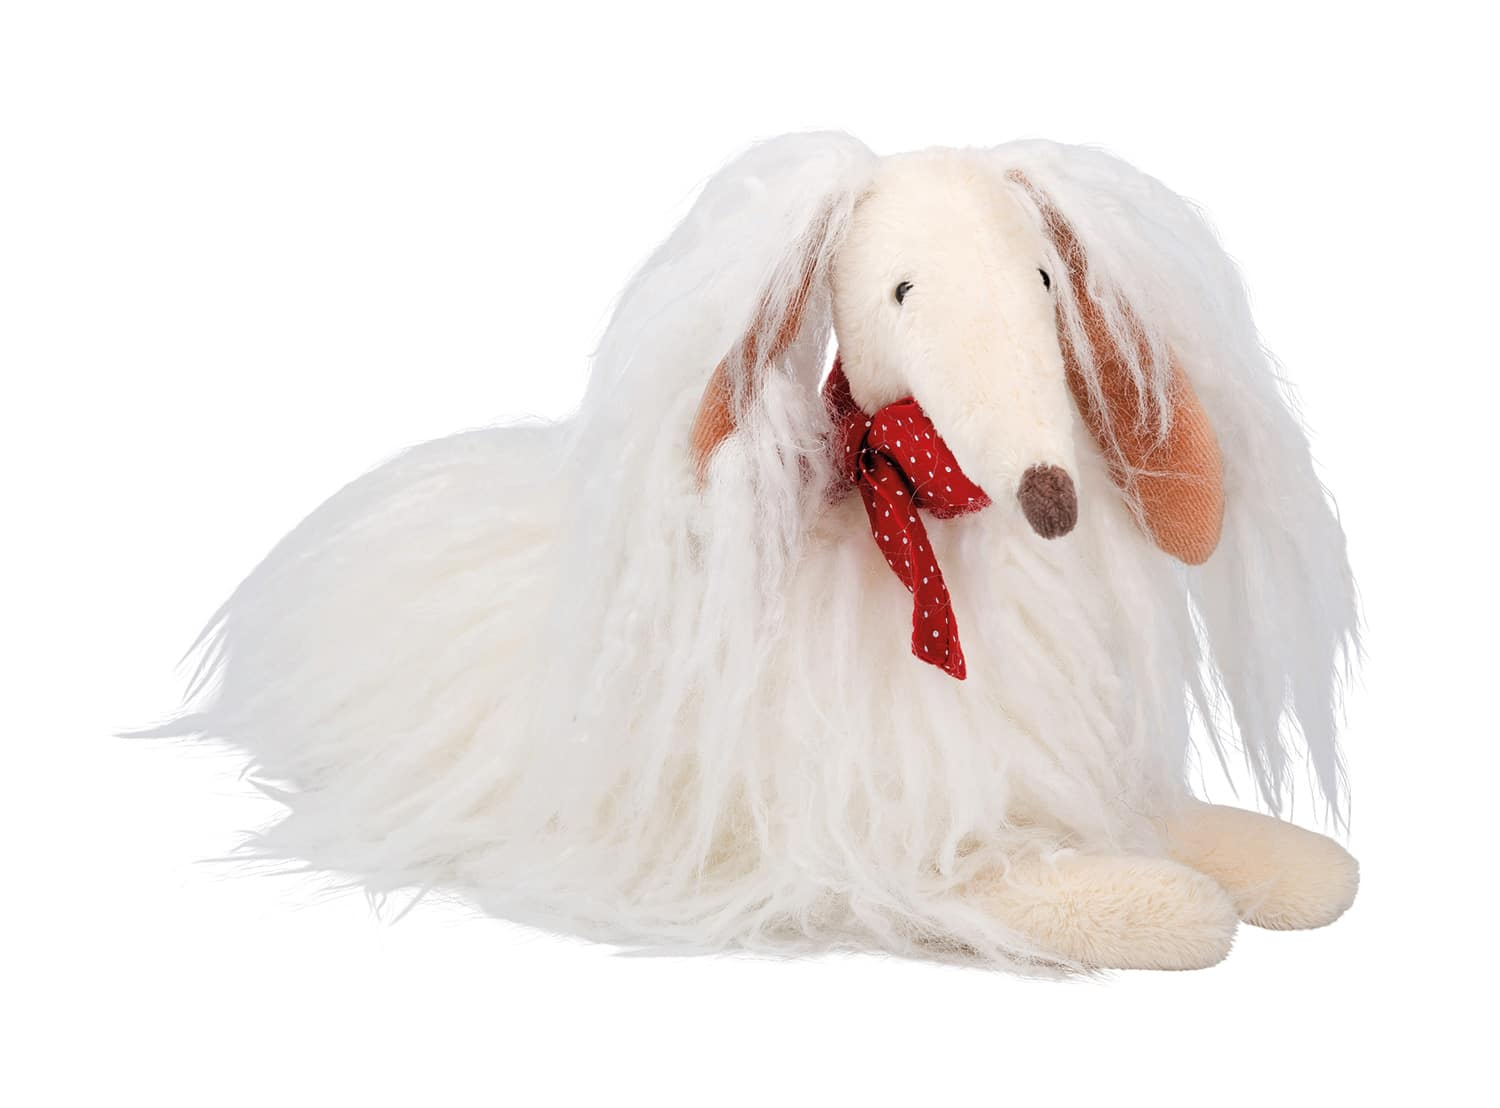 Les Coquettes Scarlette the white dog